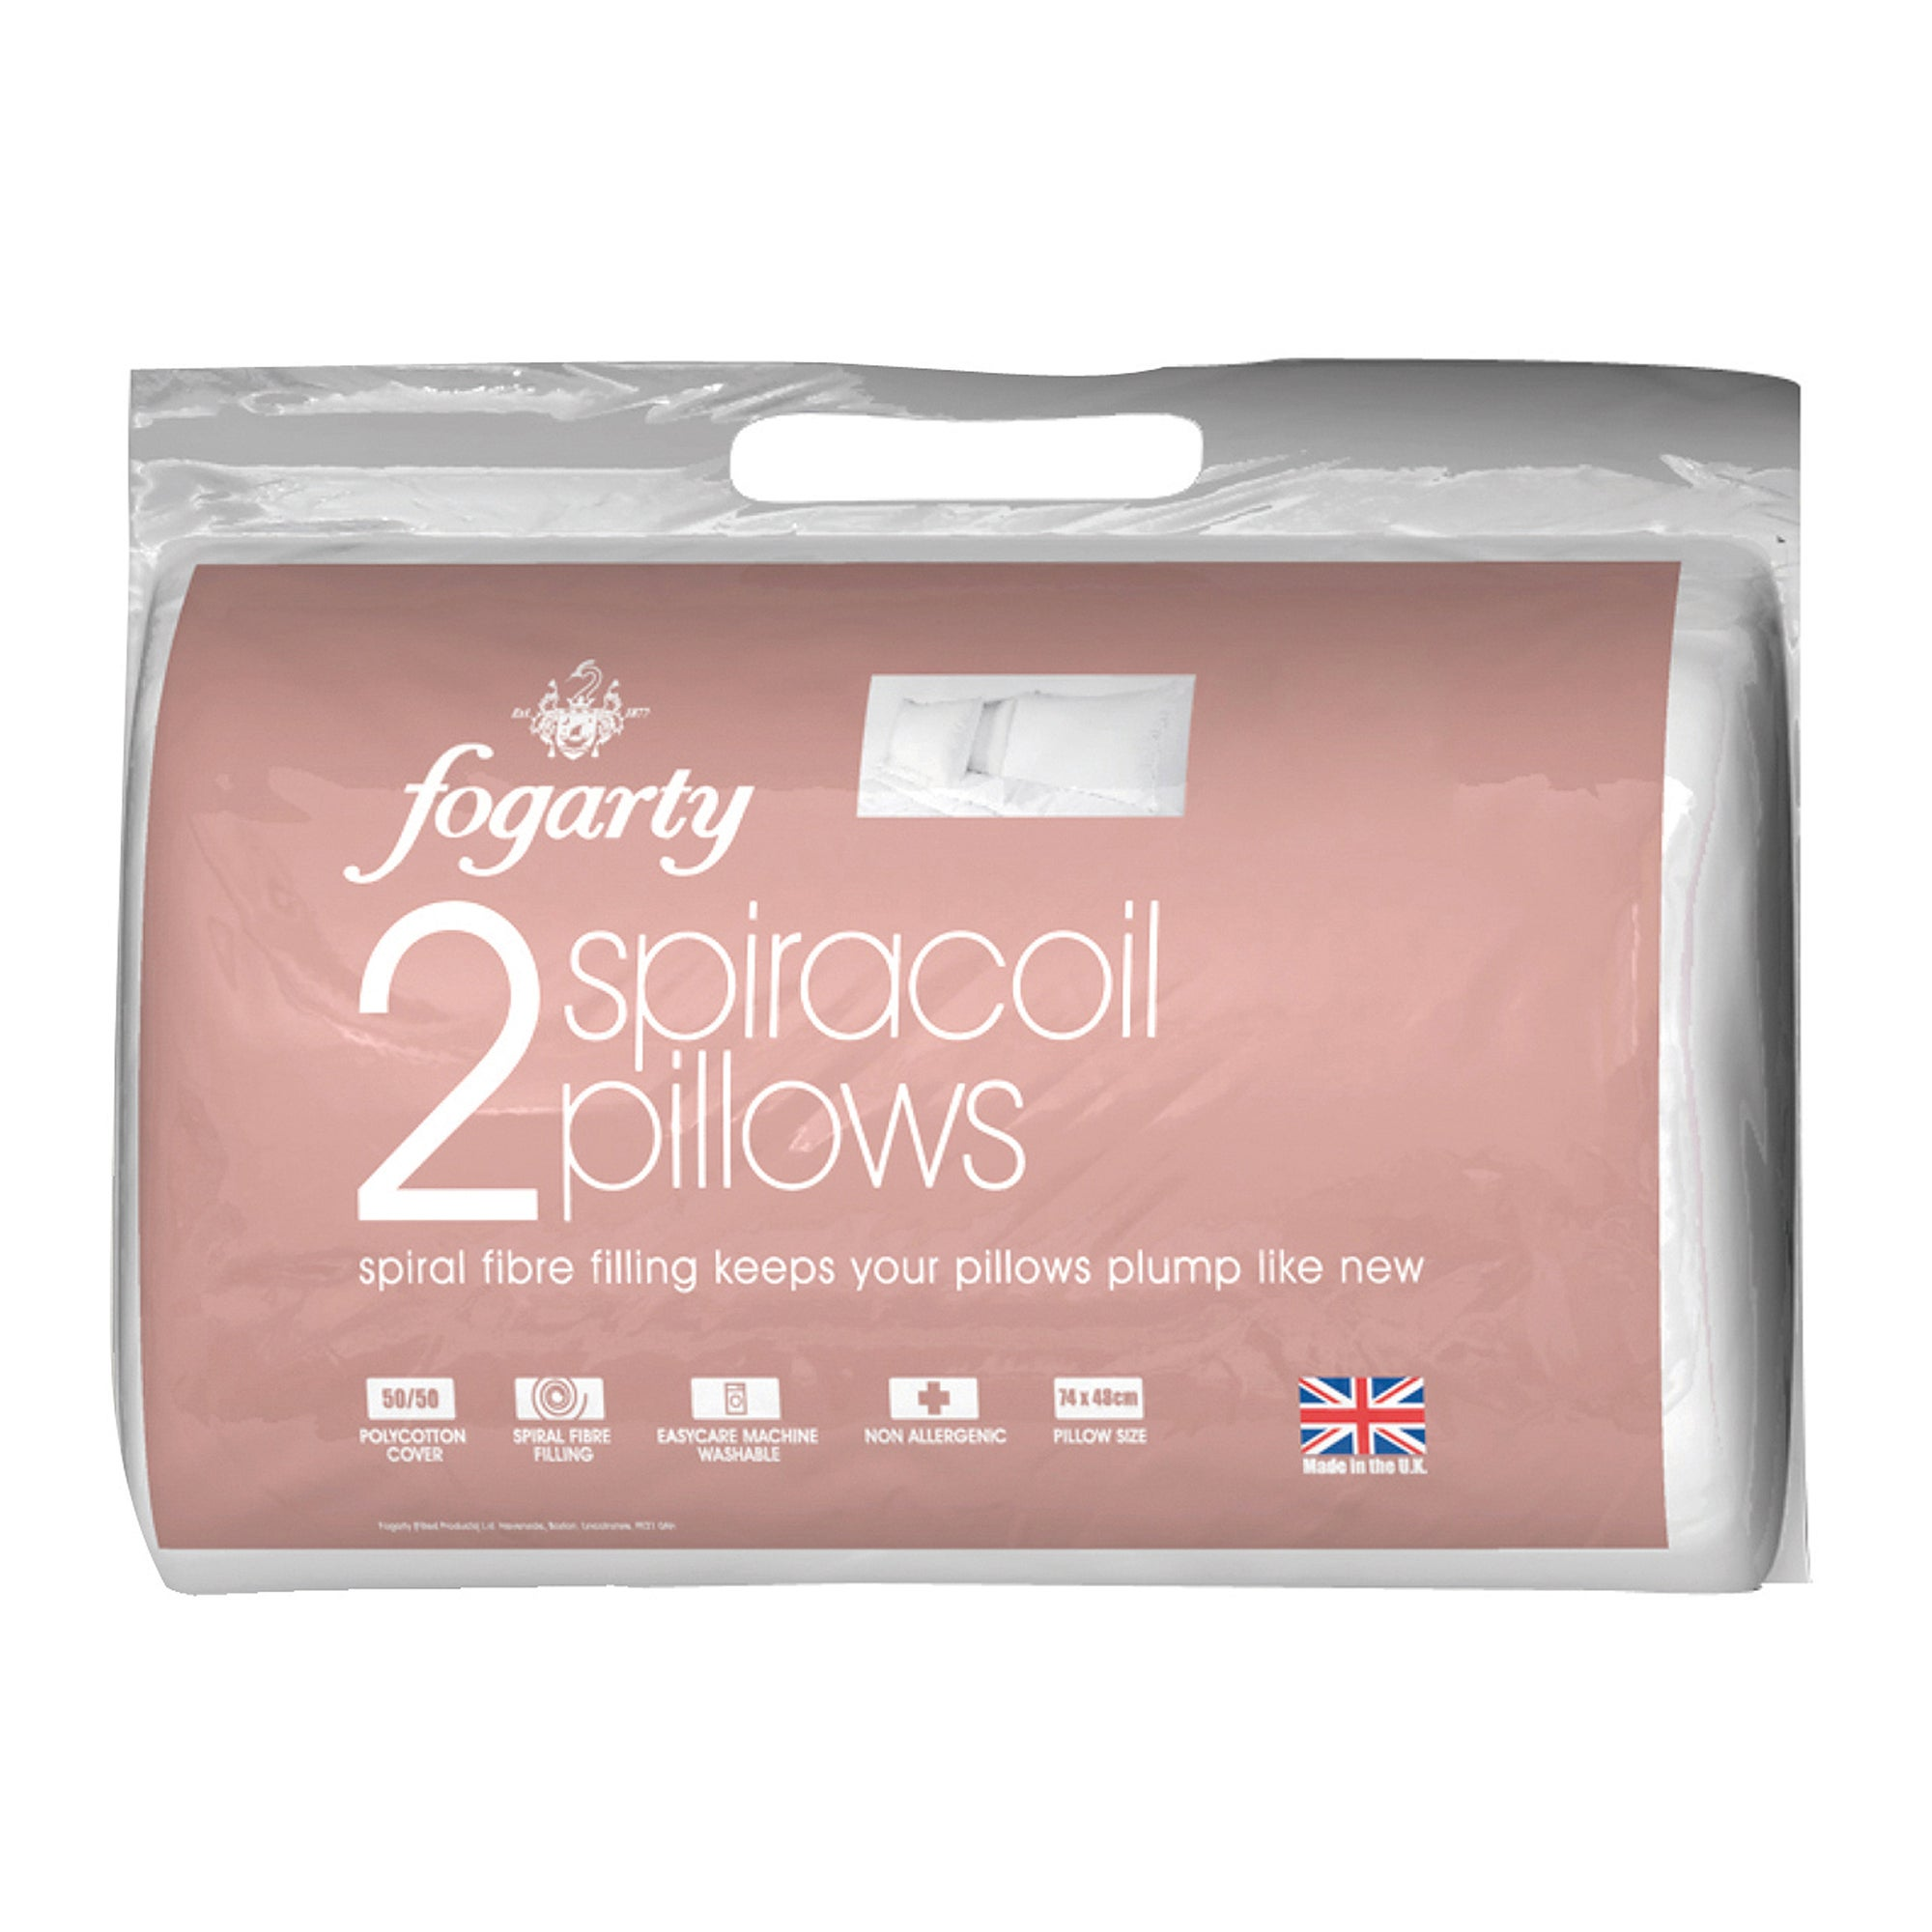 Fogarty Spiracoil Pair of Pillows